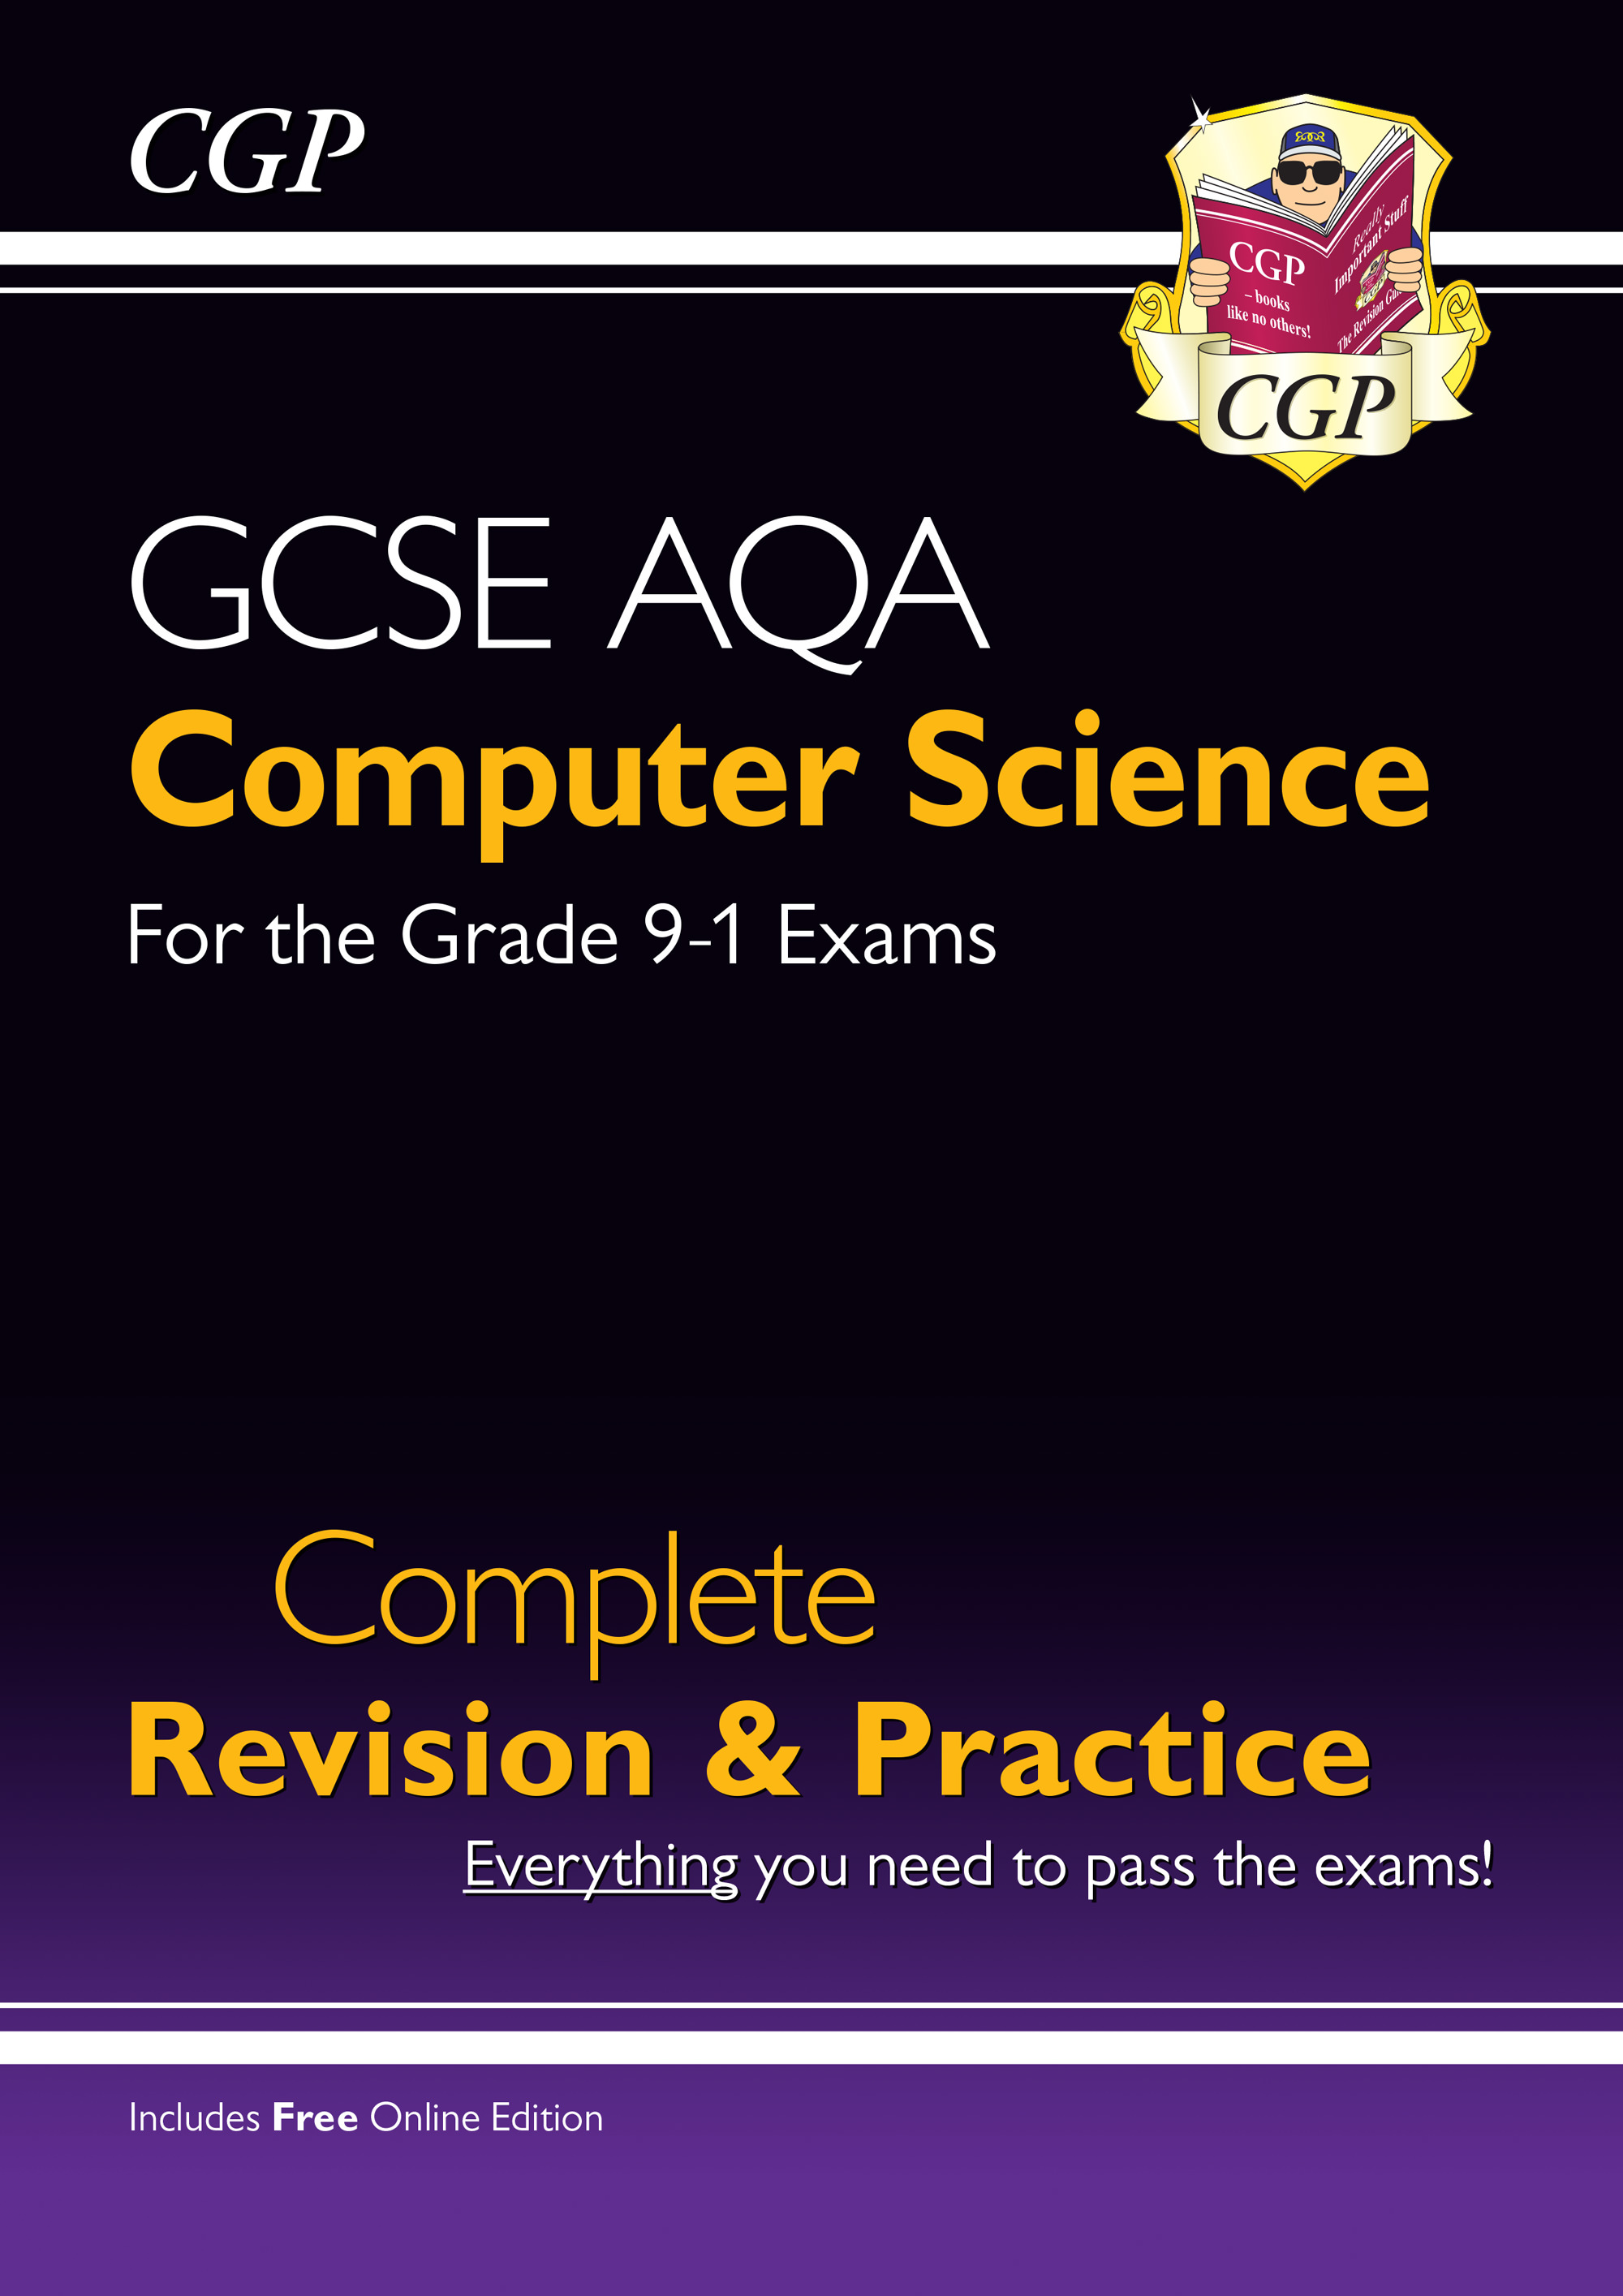 COAS41 - New GCSE Computer Science AQA Complete Revision & Practice - Grade 9-1 (with Online Edition